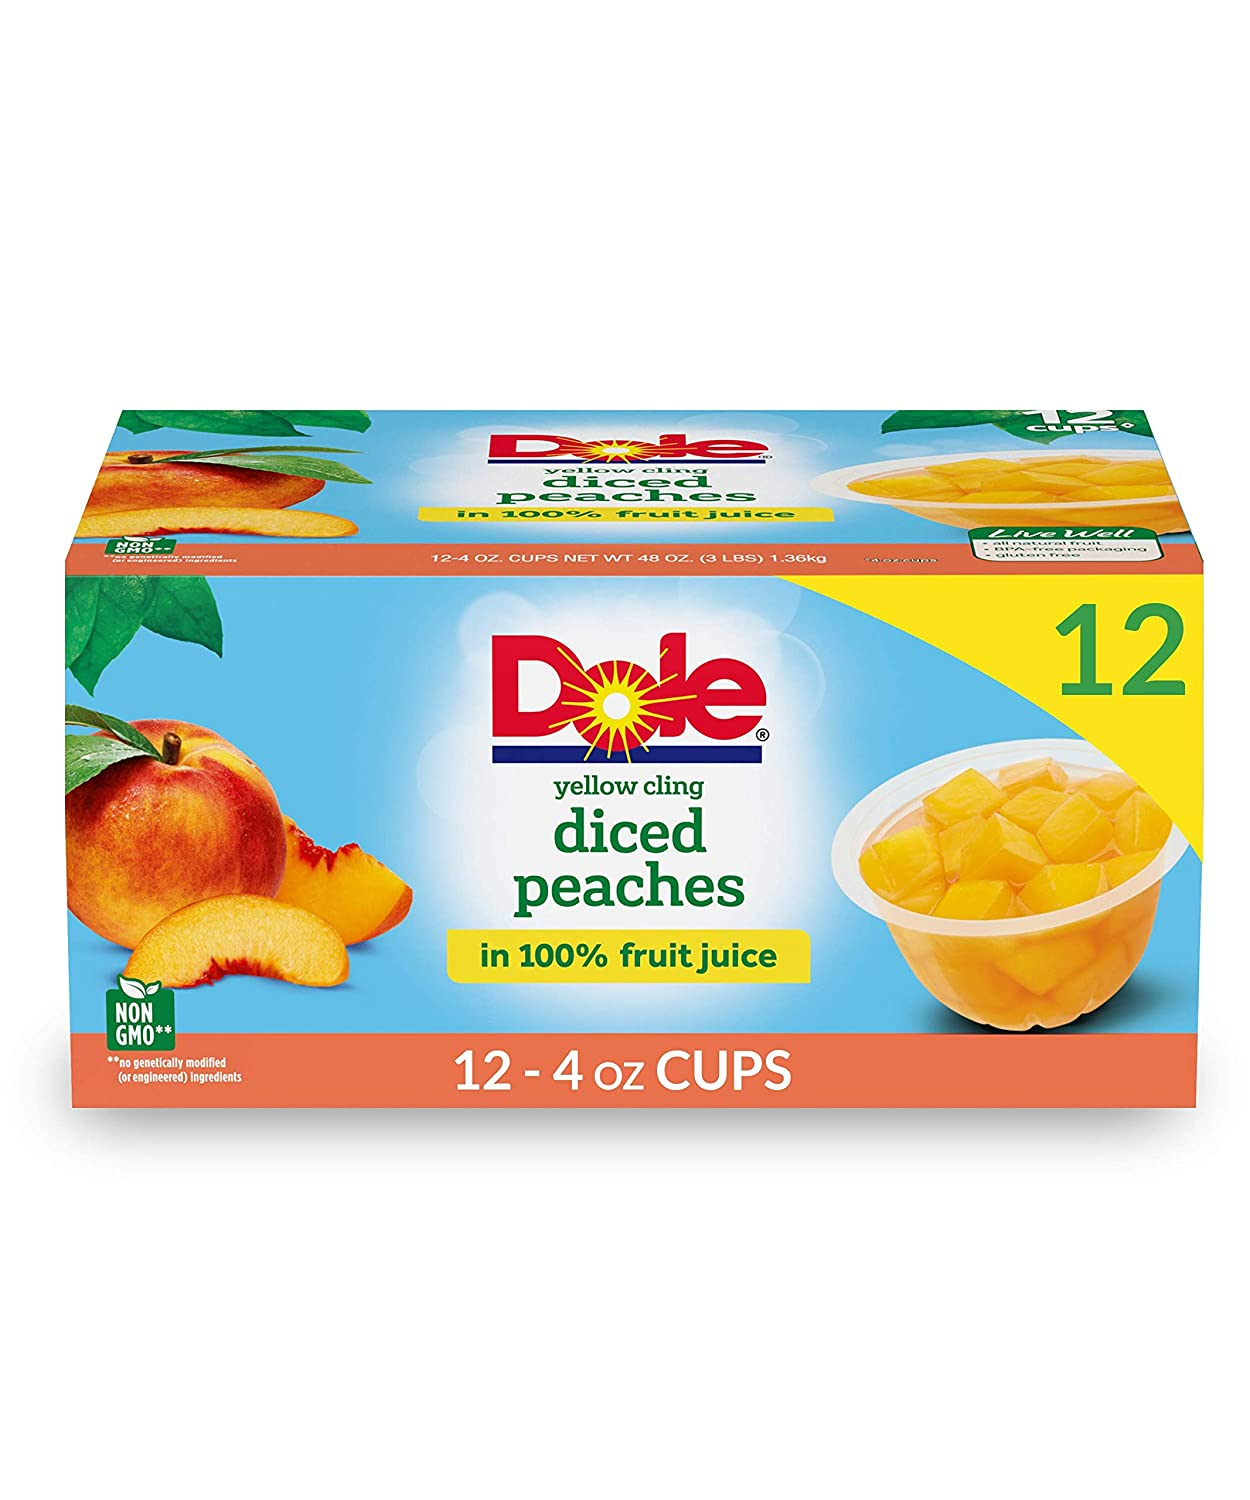 Dole Fruit Bowls, Diced Peaches in 100% Fruit Juice, 12 Count, 4 Ounce Cups